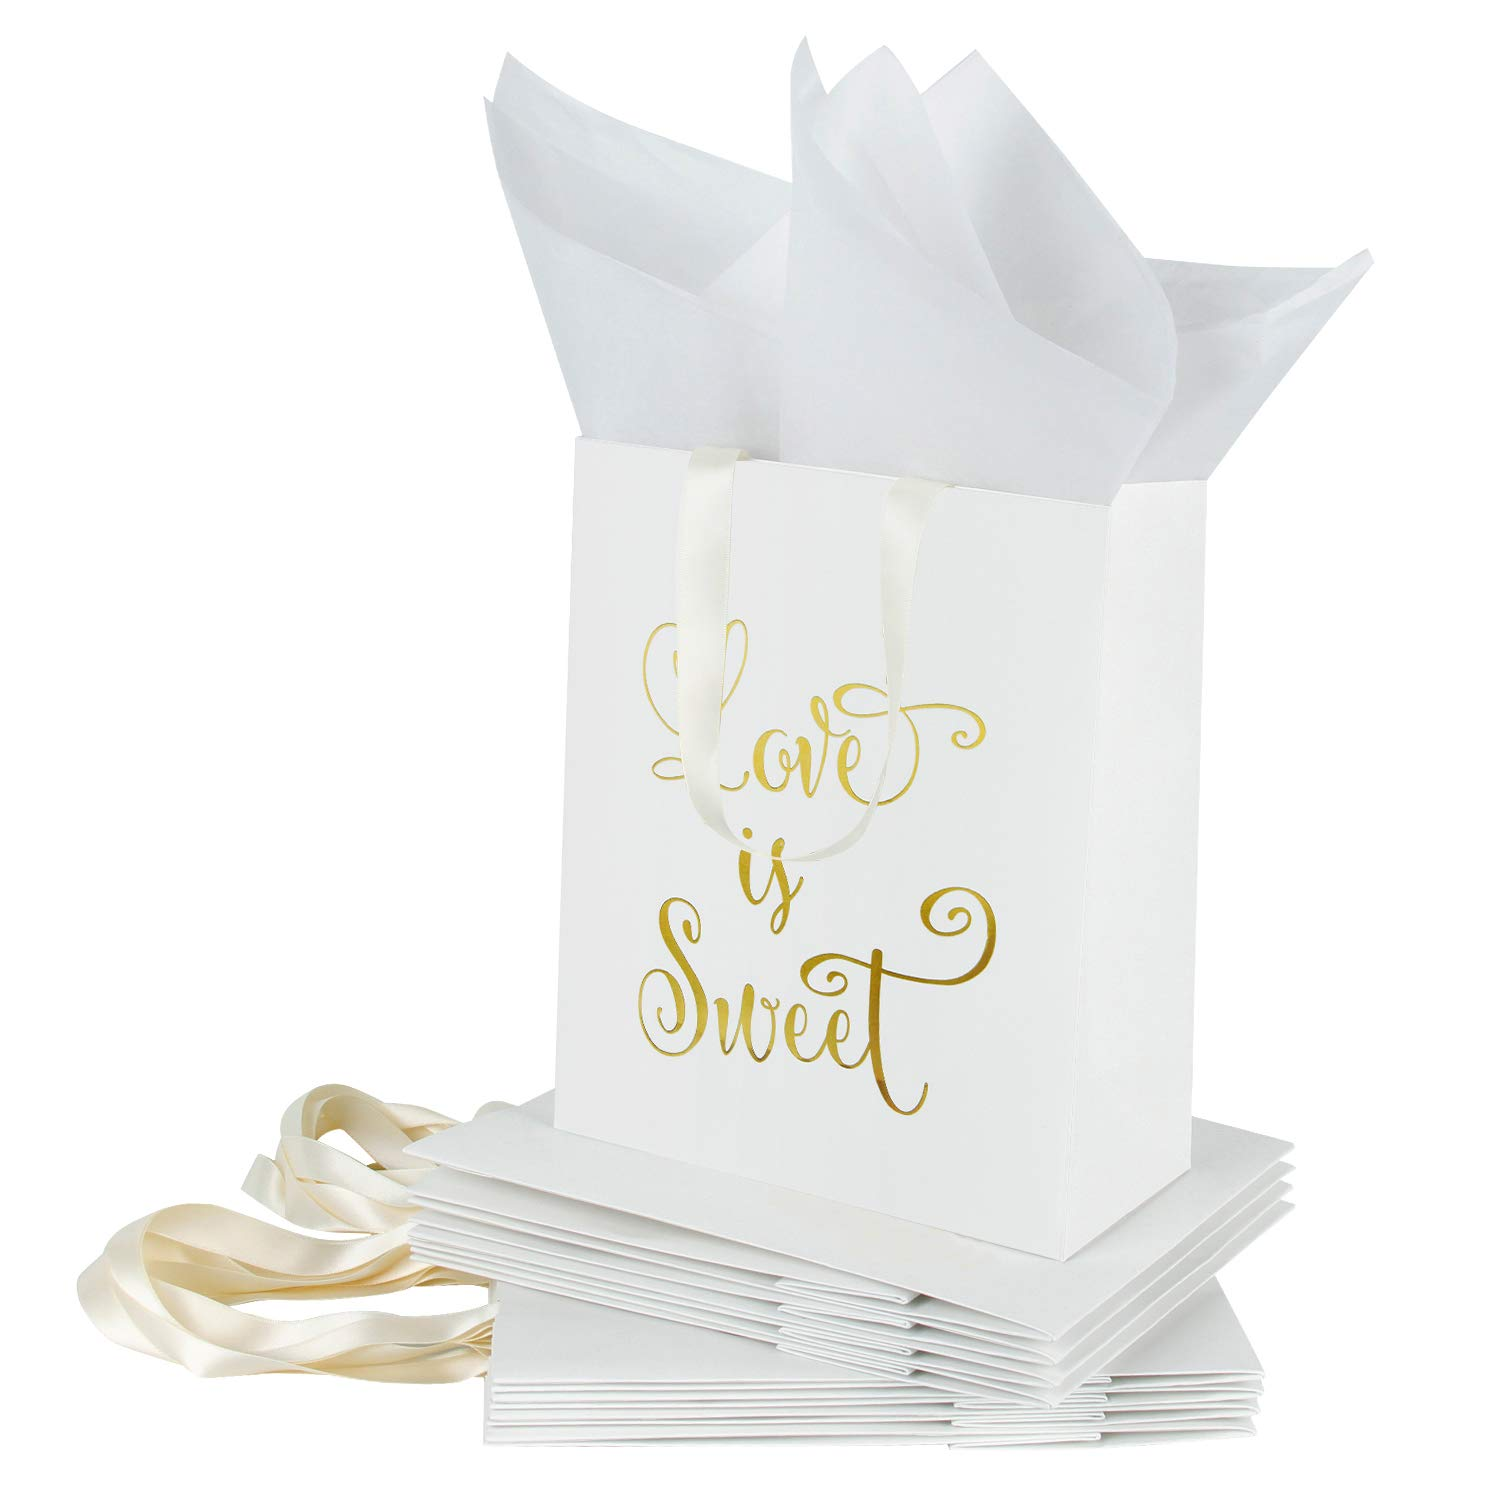 Loveinside Medium Kraft Gift Bags-Love is Sweet Gold Foil White Paper Gift Bag with Tissue Paper - Wedding,Birthday,Party Favor,Bridesmaids Gift-12Pack -8'' X 4'' X 10''